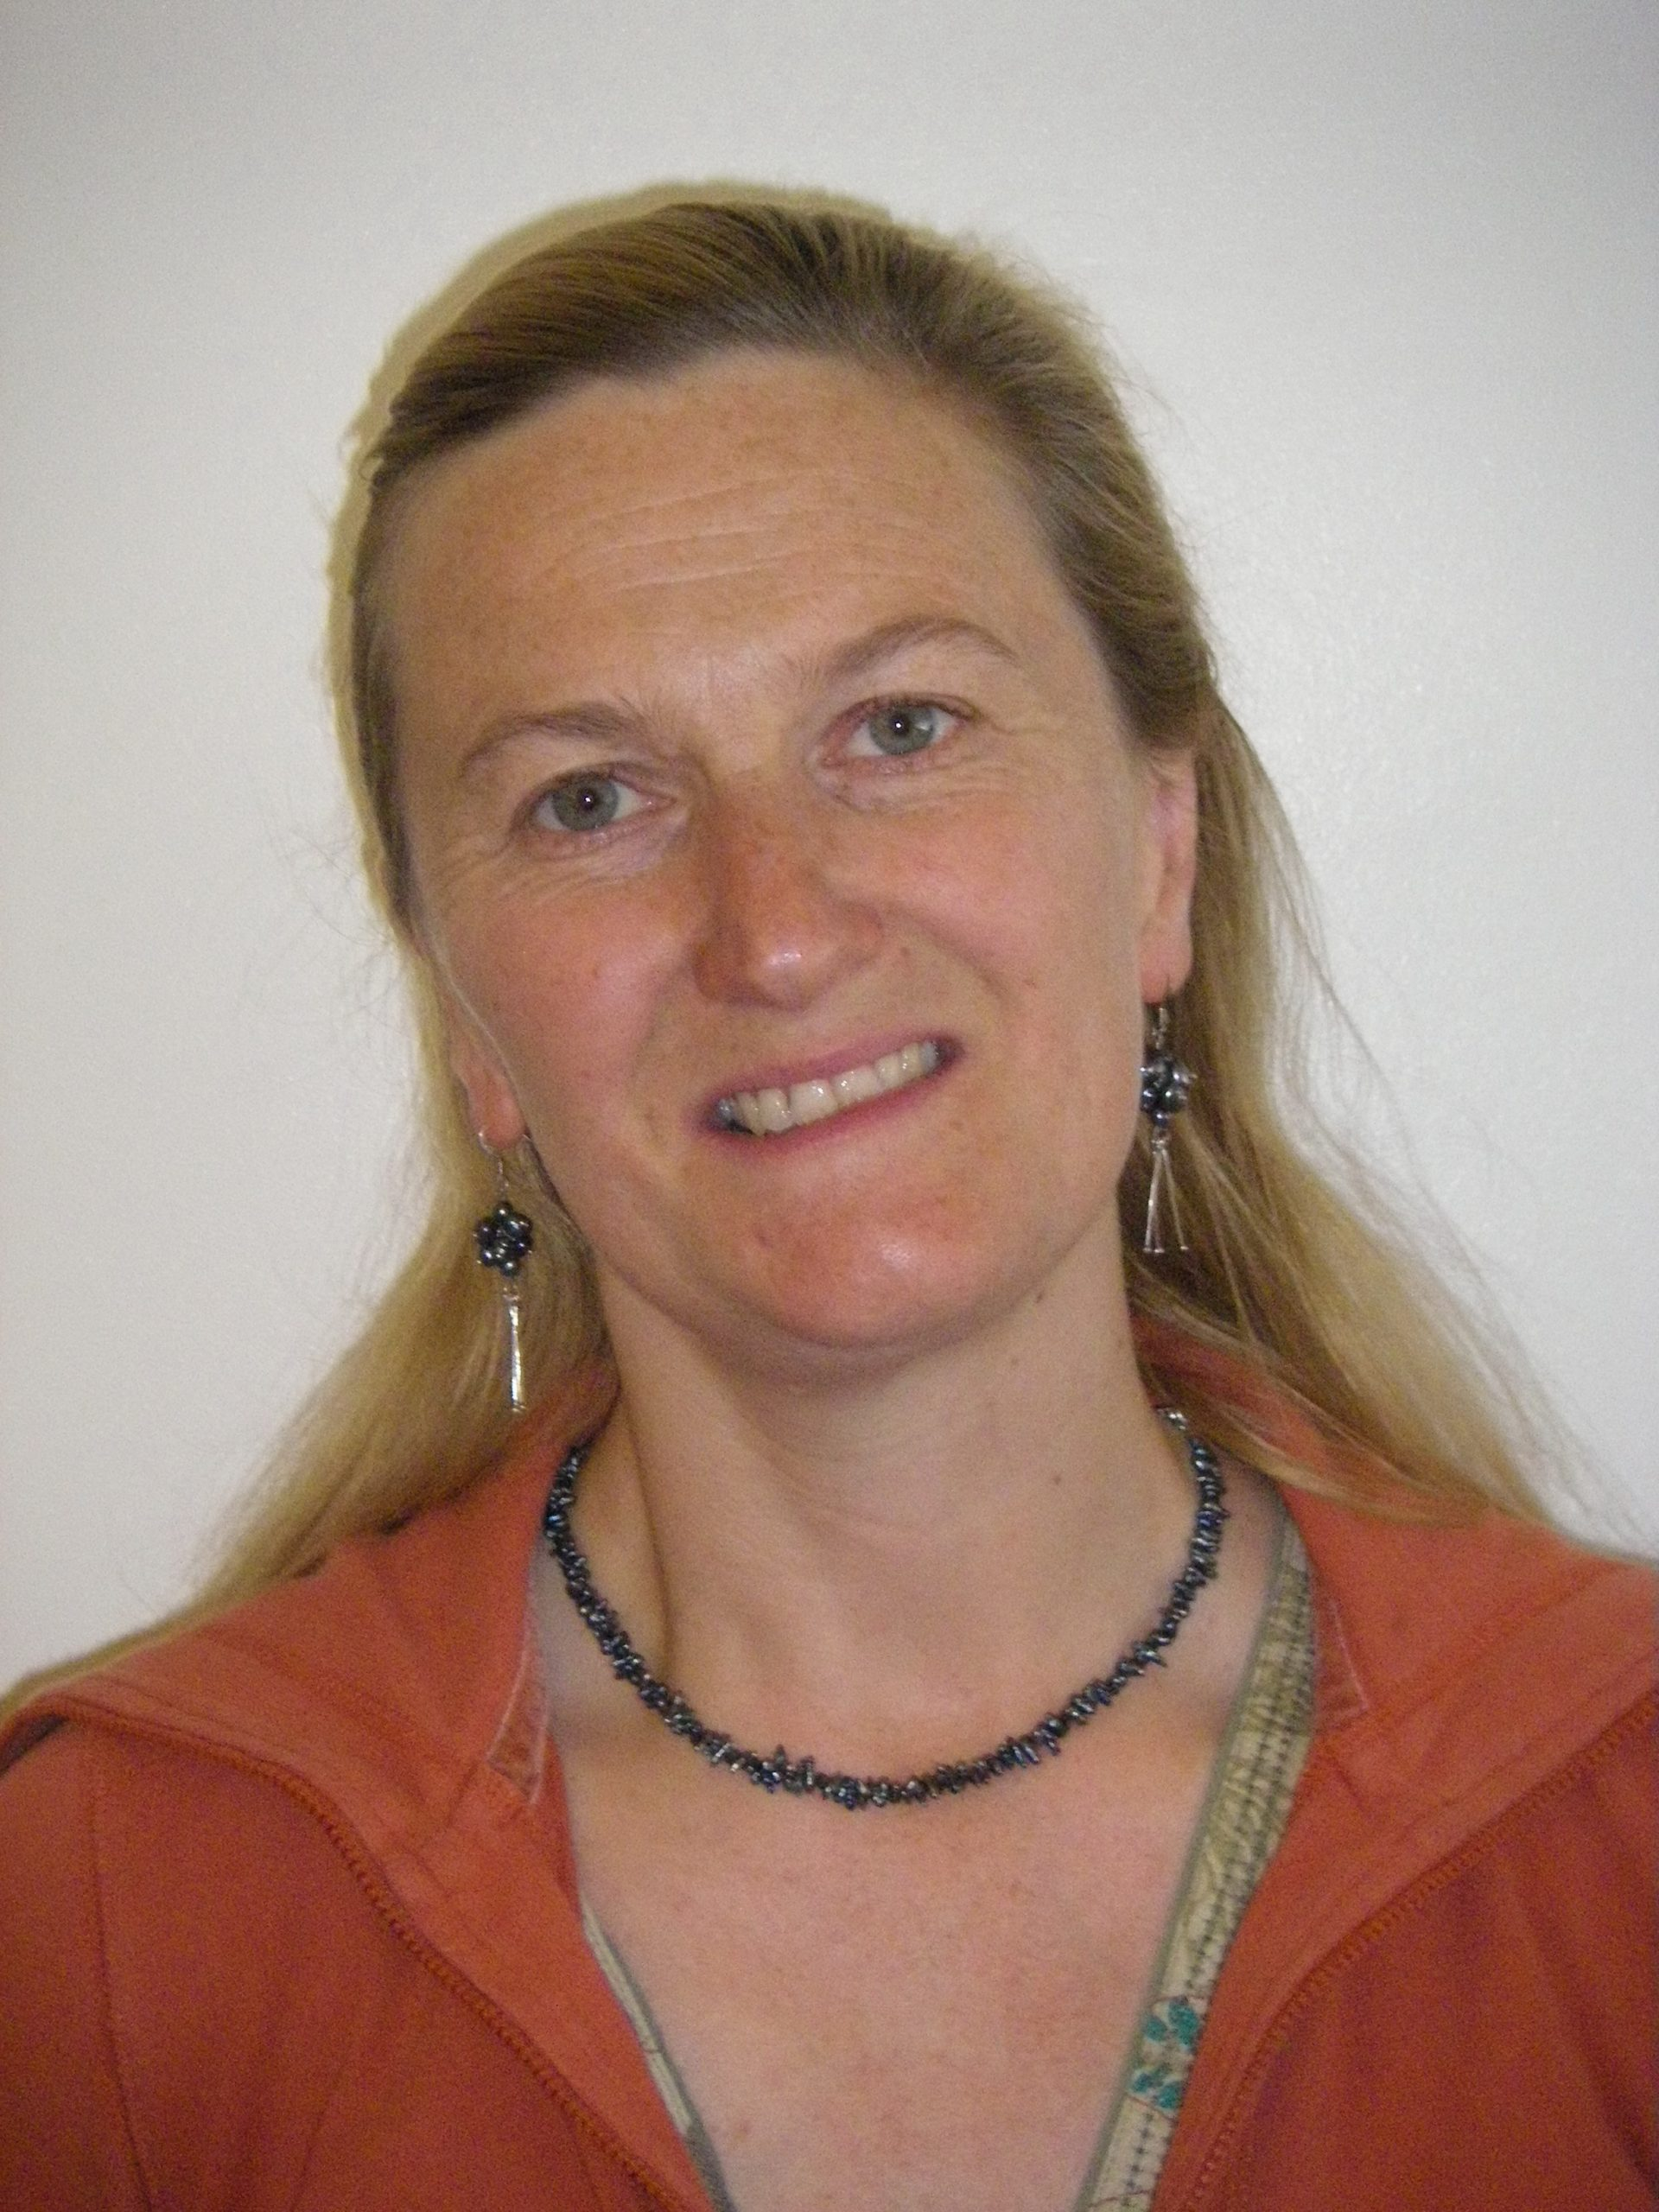 Helen Jarvis PhD, Reader in Urban Social Geography at Newcastle University, UK.